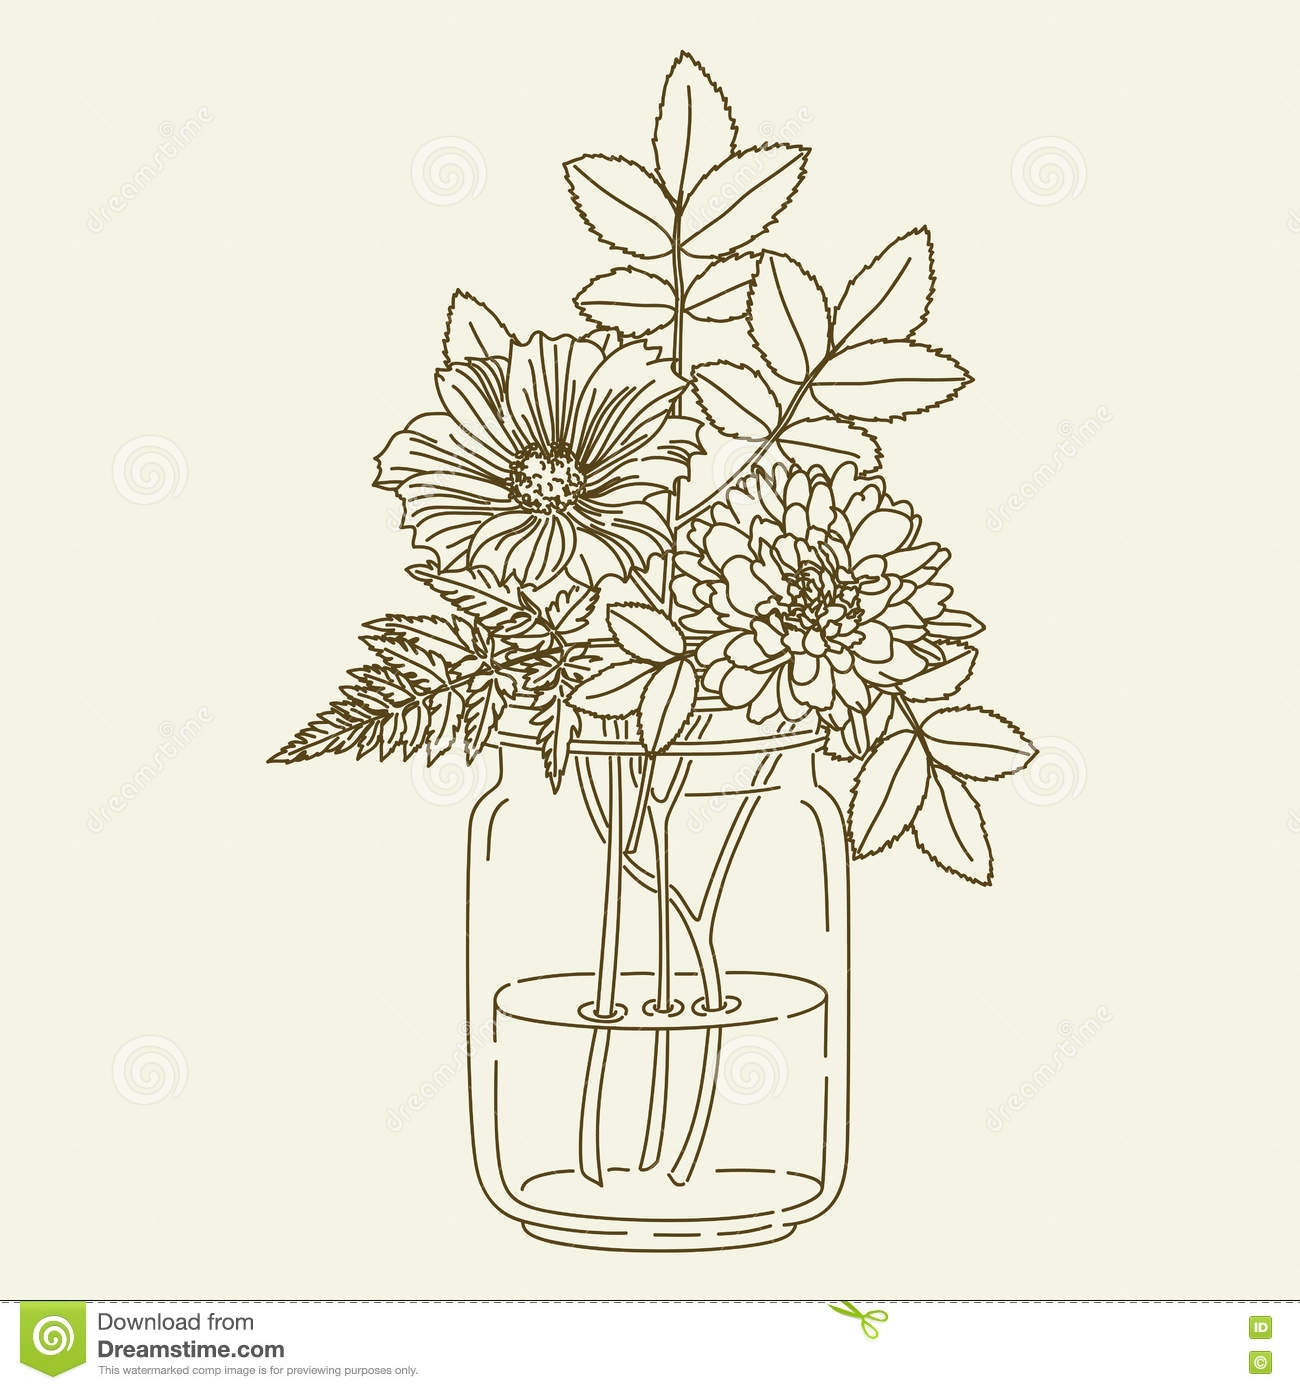 branch coloring page - stock illustration flowers mason jar hand drawn vector hand drawn illustration coloring page image